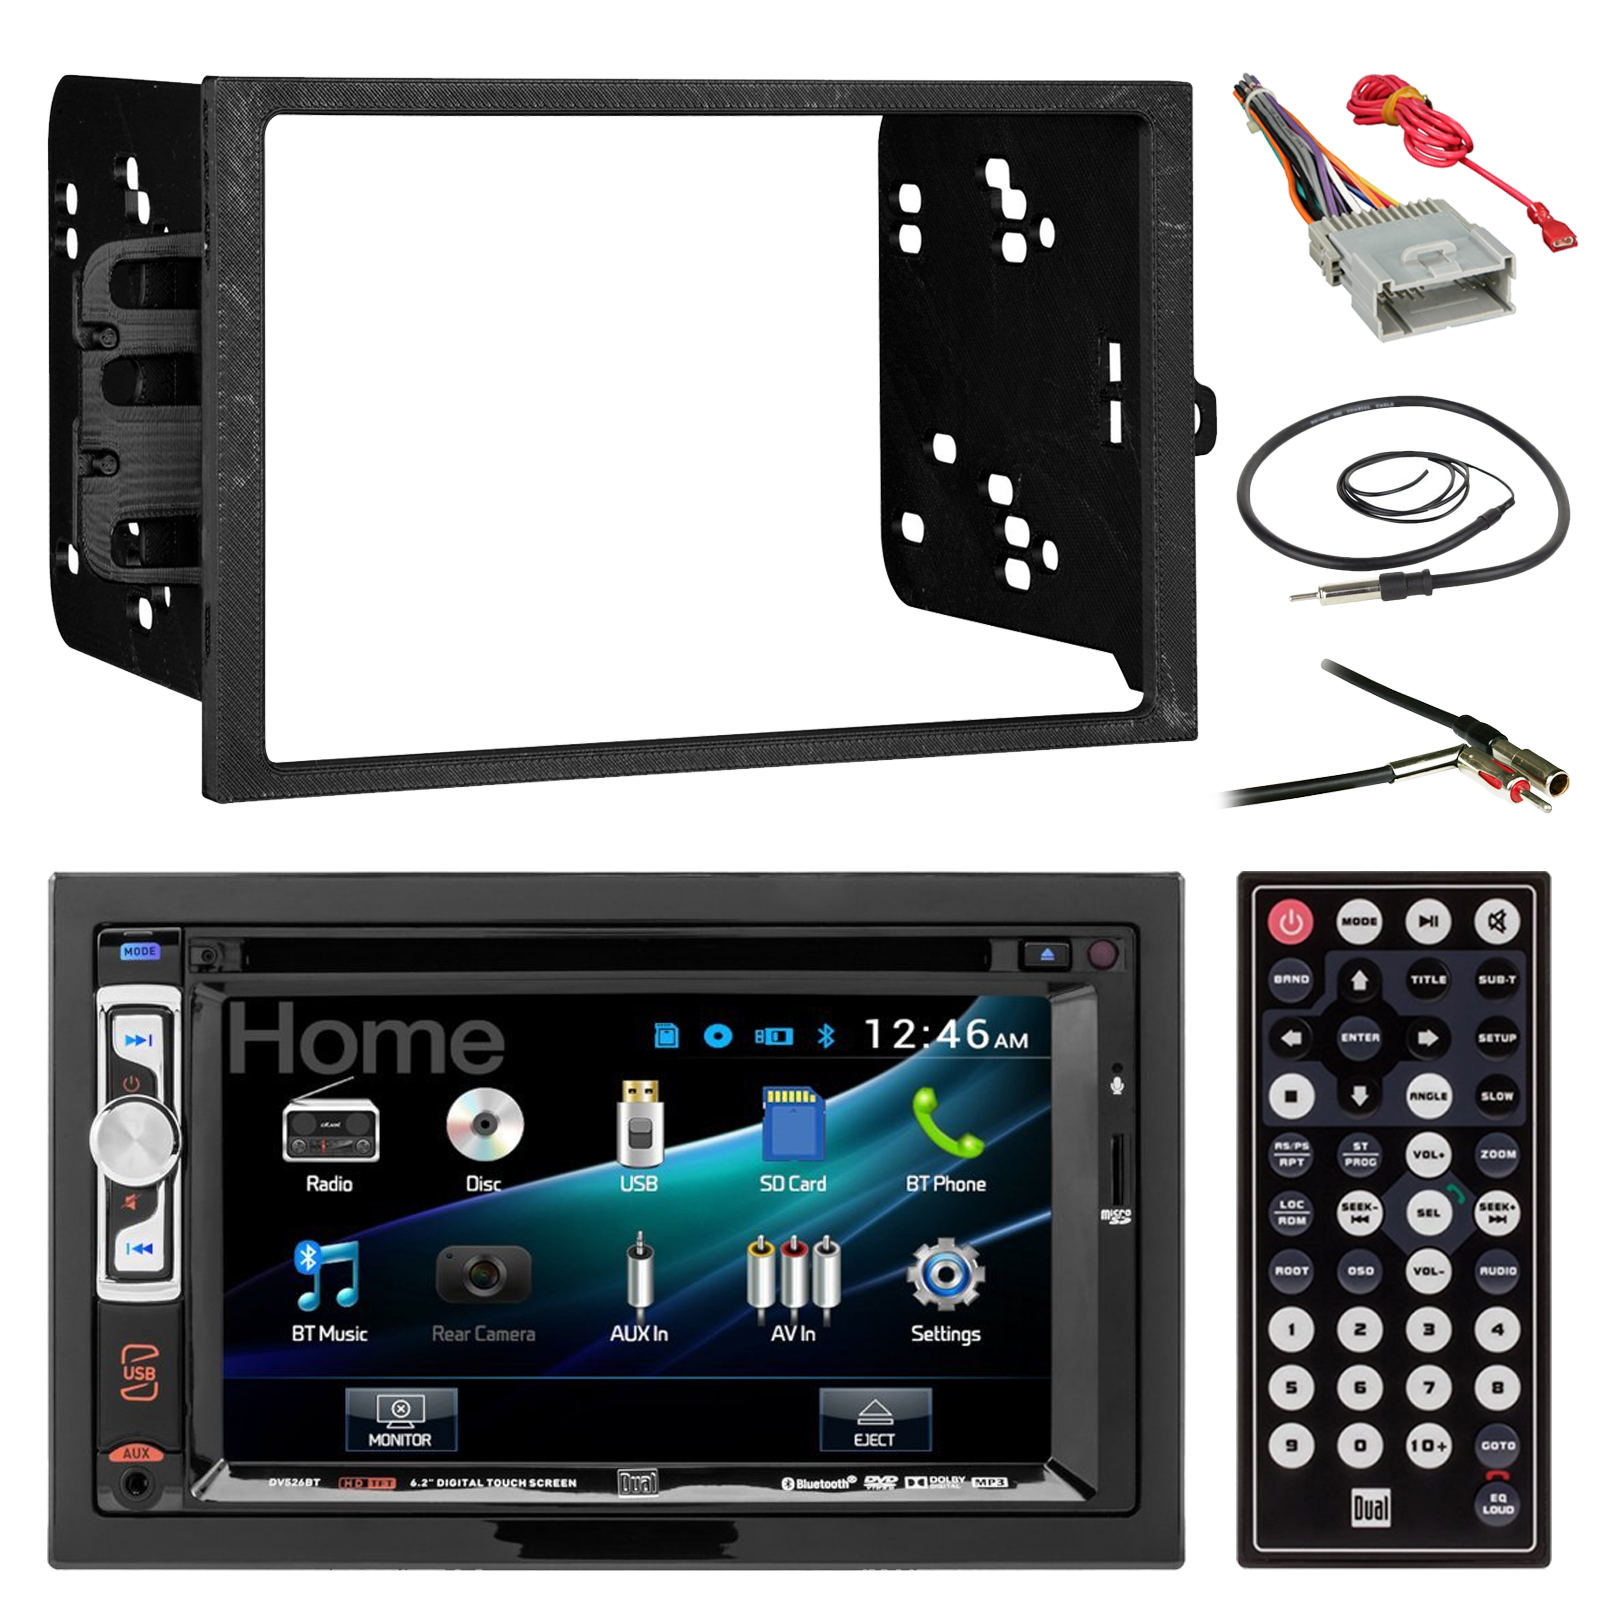 Dual Car Stereo Wire Harness Box Wiring Diagram Model Cd770 Dv526bt 6 2 Double Din Cd Dvd Bluetooth Receiver Harley 12 Pin